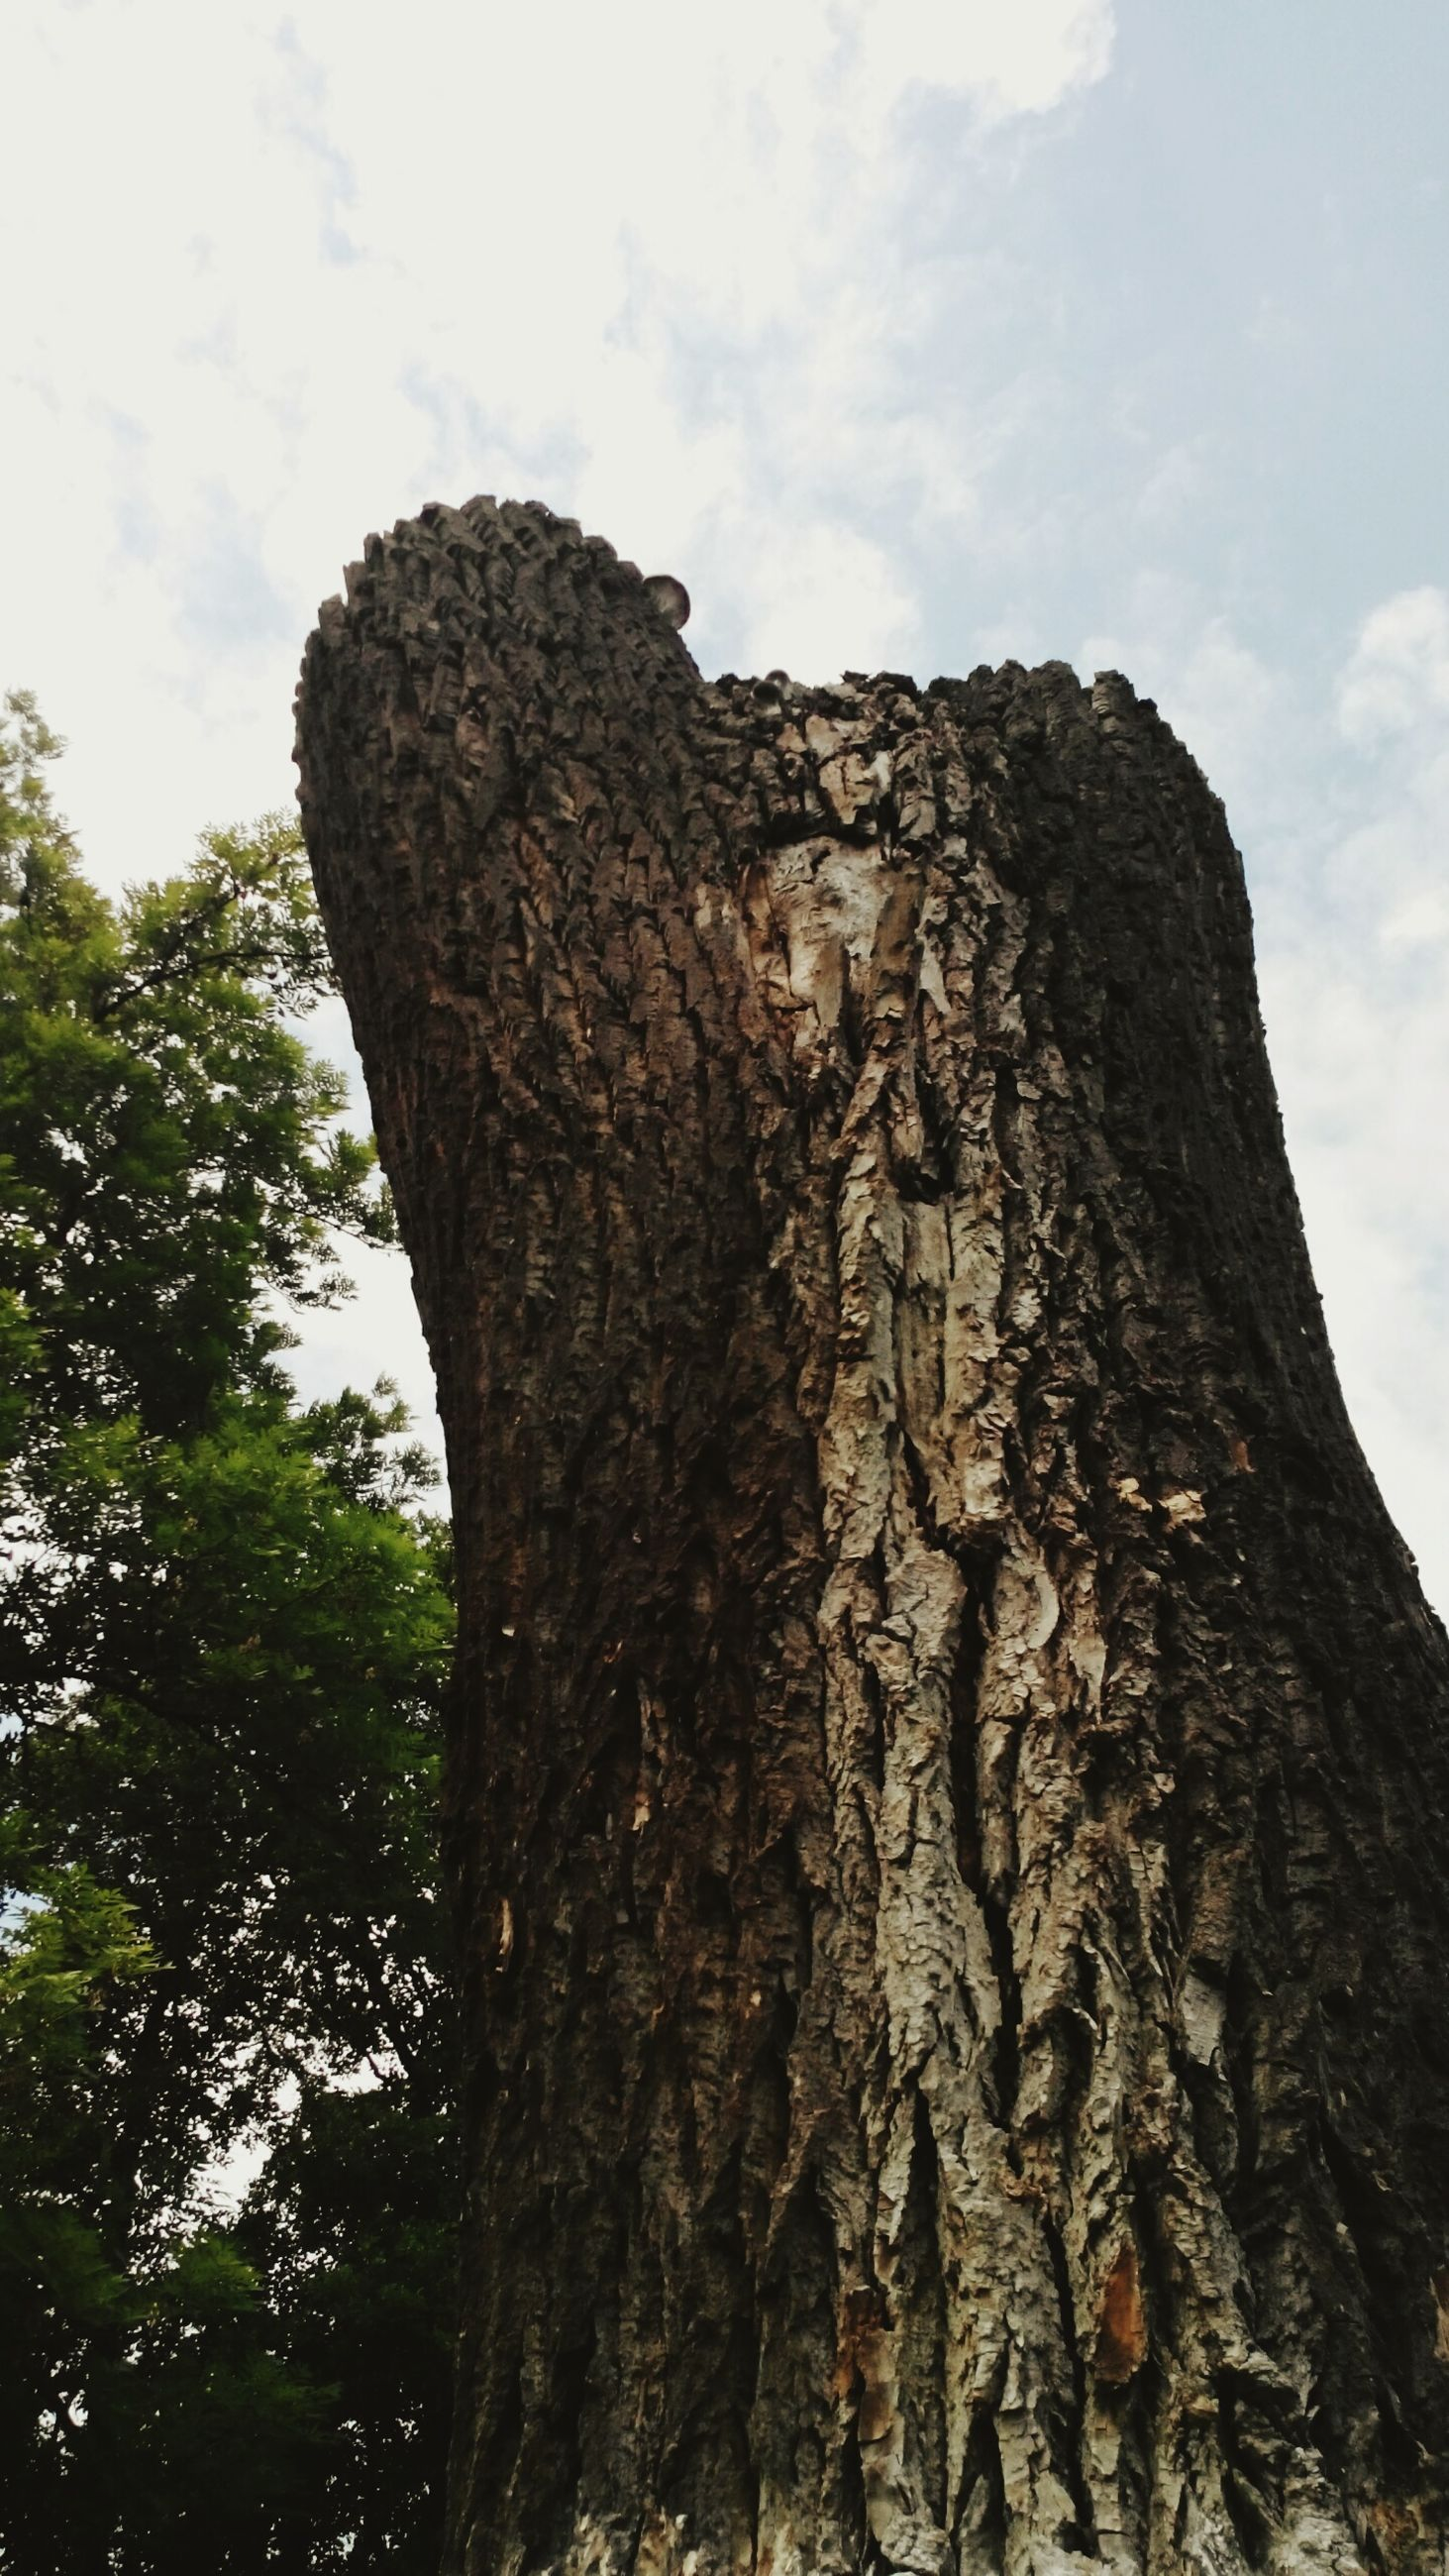 tree, low angle view, tree trunk, sky, textured, nature, tranquility, bark, growth, rough, natural pattern, close-up, day, beauty in nature, outdoors, no people, branch, tranquil scene, cloud - sky, wood - material